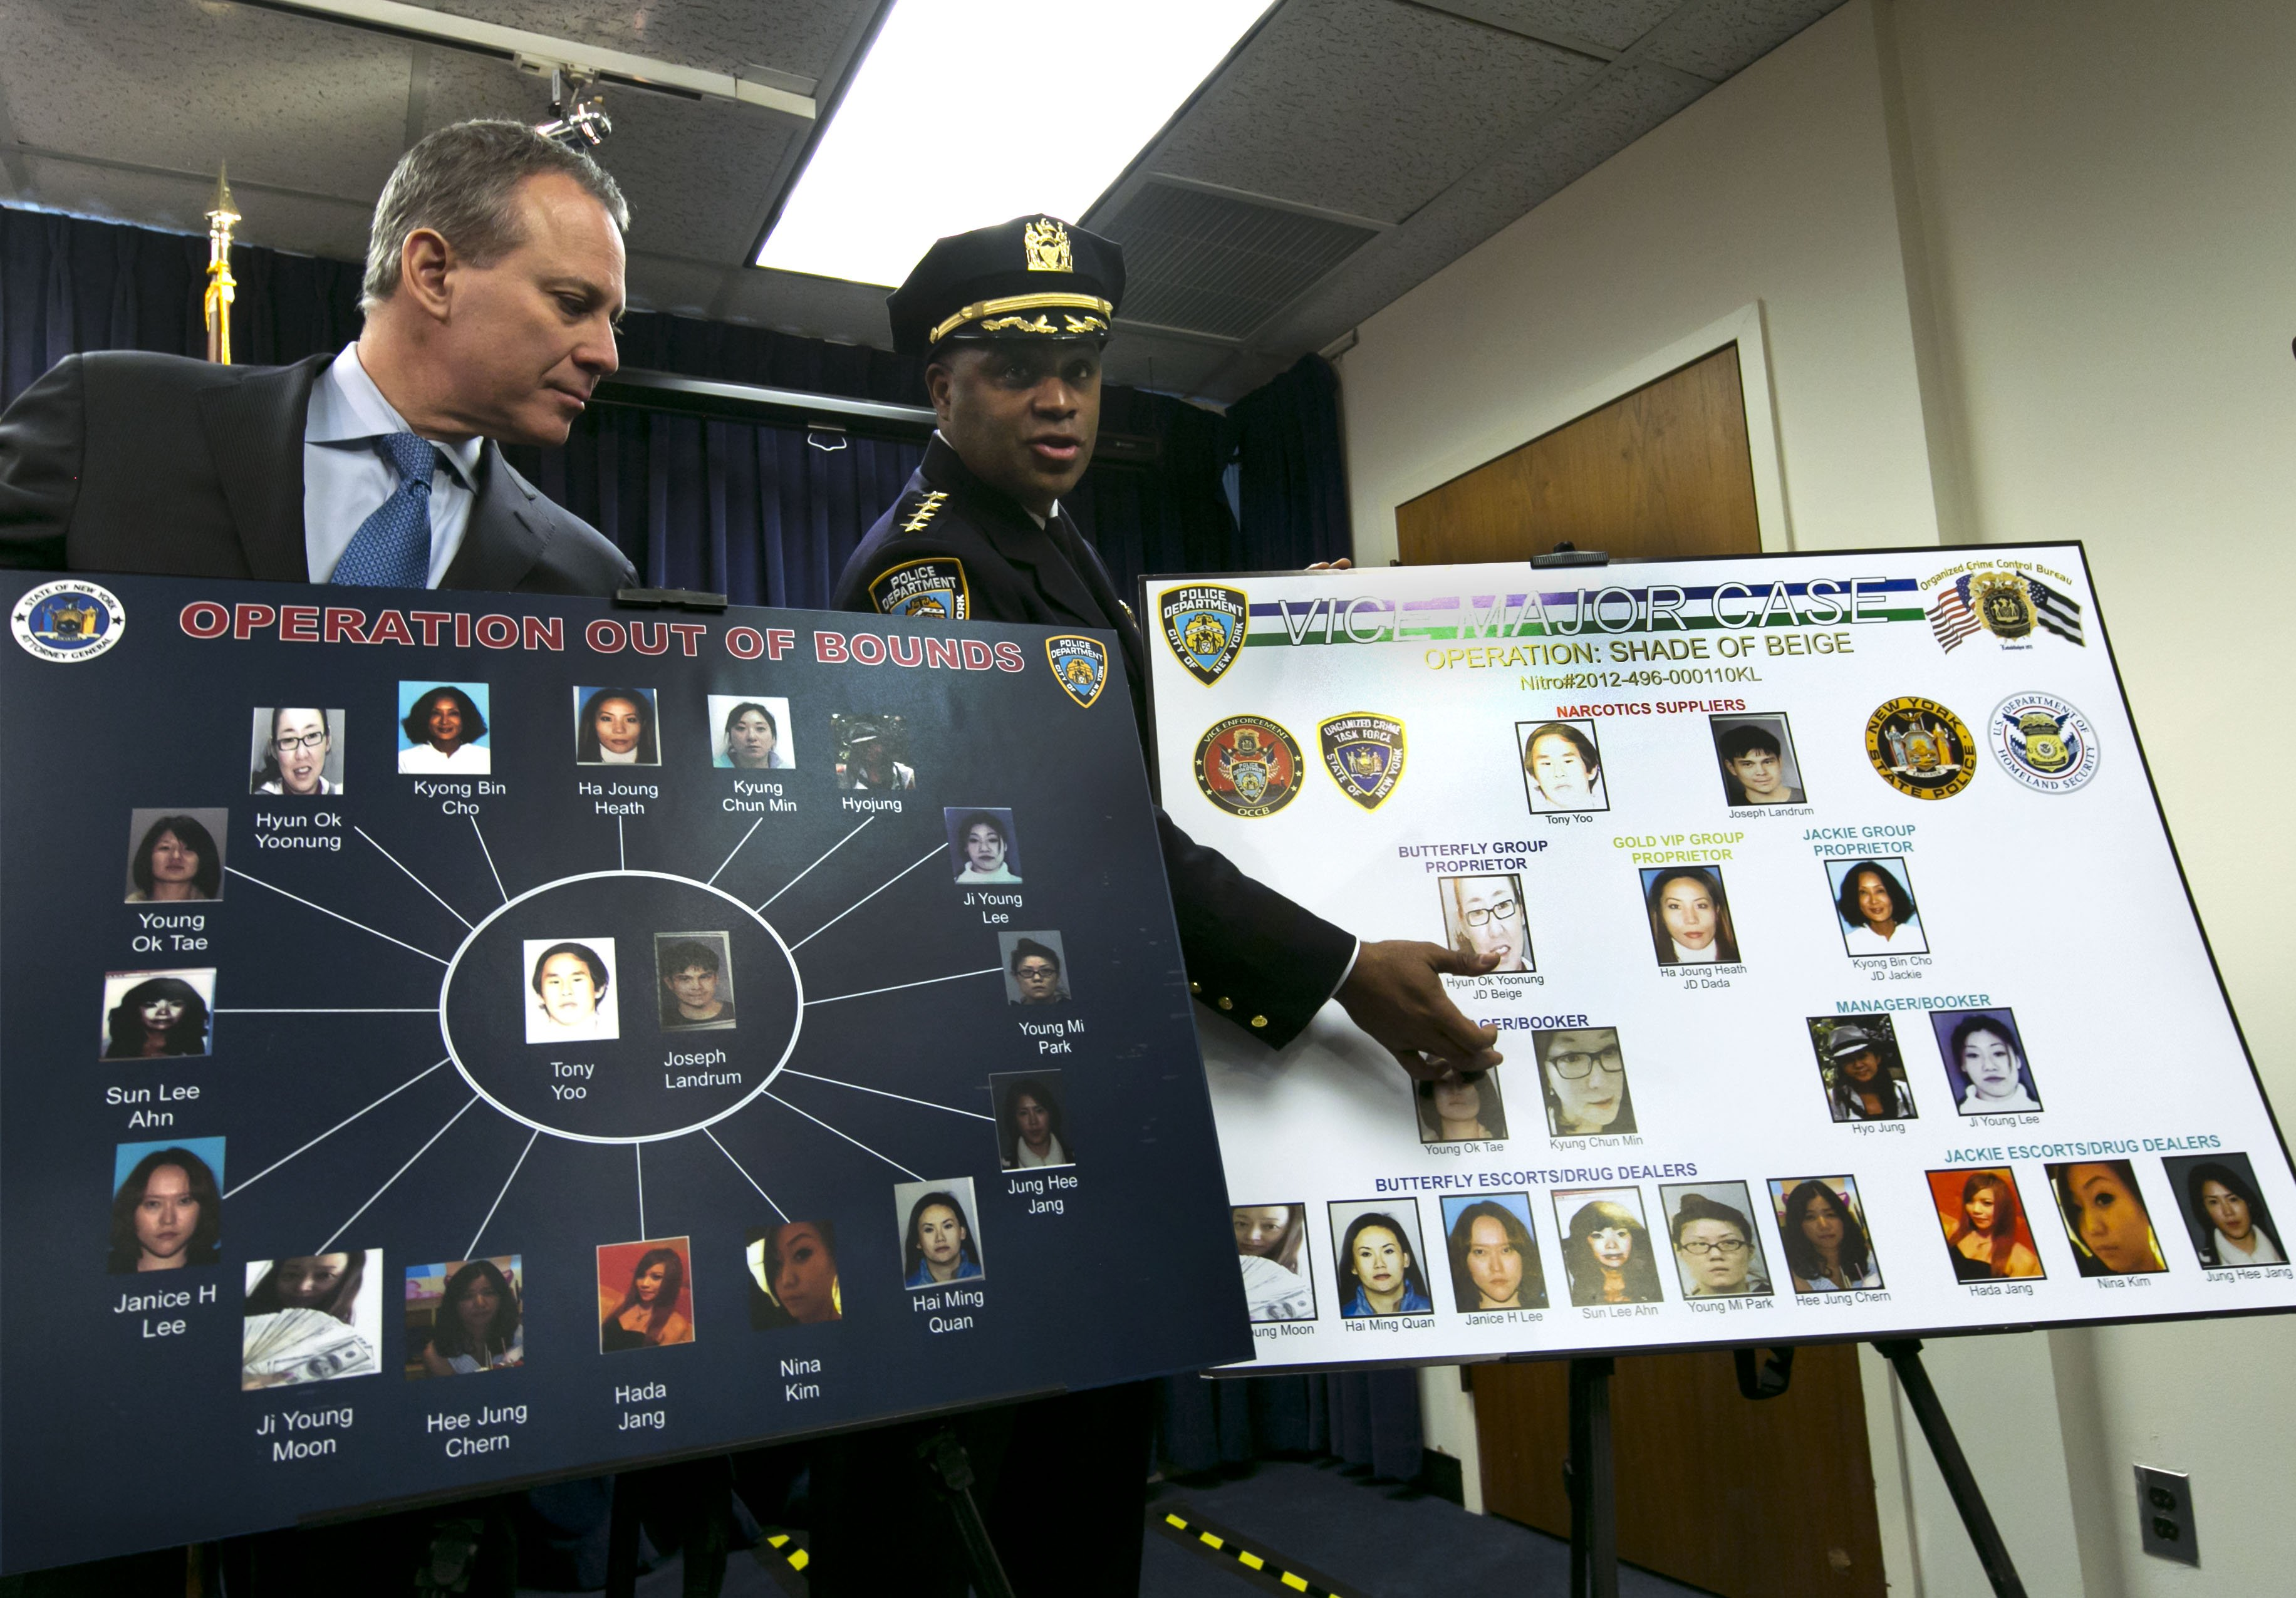 From left: New York Attorney General Eric Schneiderman and New York City Police Dept. Chief of Department Philip Banks display a chart relating to the Super Bowl  party packs  at a news conference, in New York City, on Jan. 30, 2014.